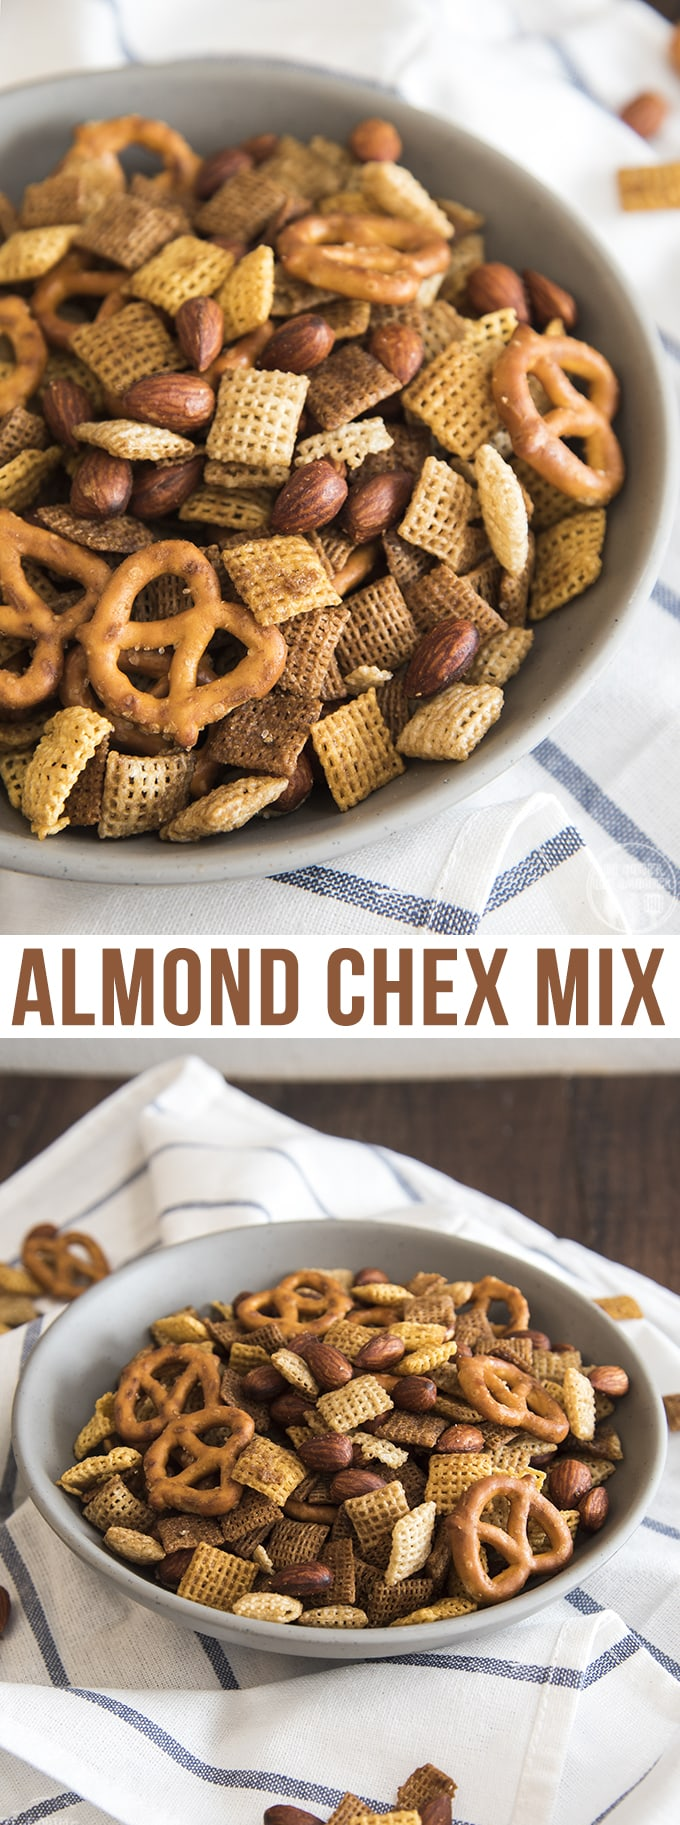 Almond chex mix is an easy savory snack mix full of so much flavor! It tastes just like the real deal!